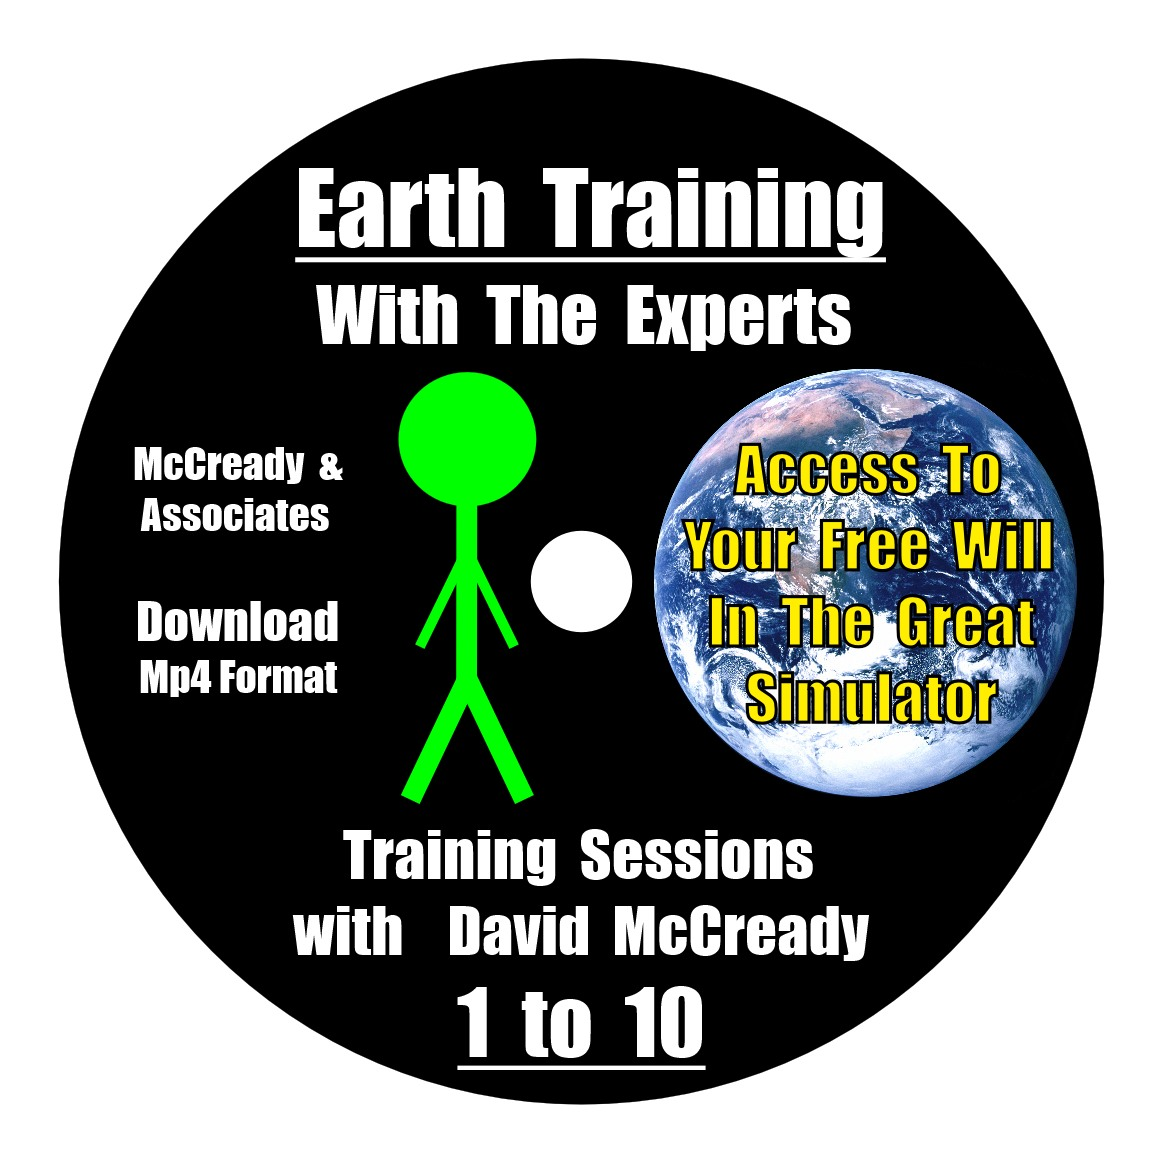 Earth Training download all  1 to 10 download